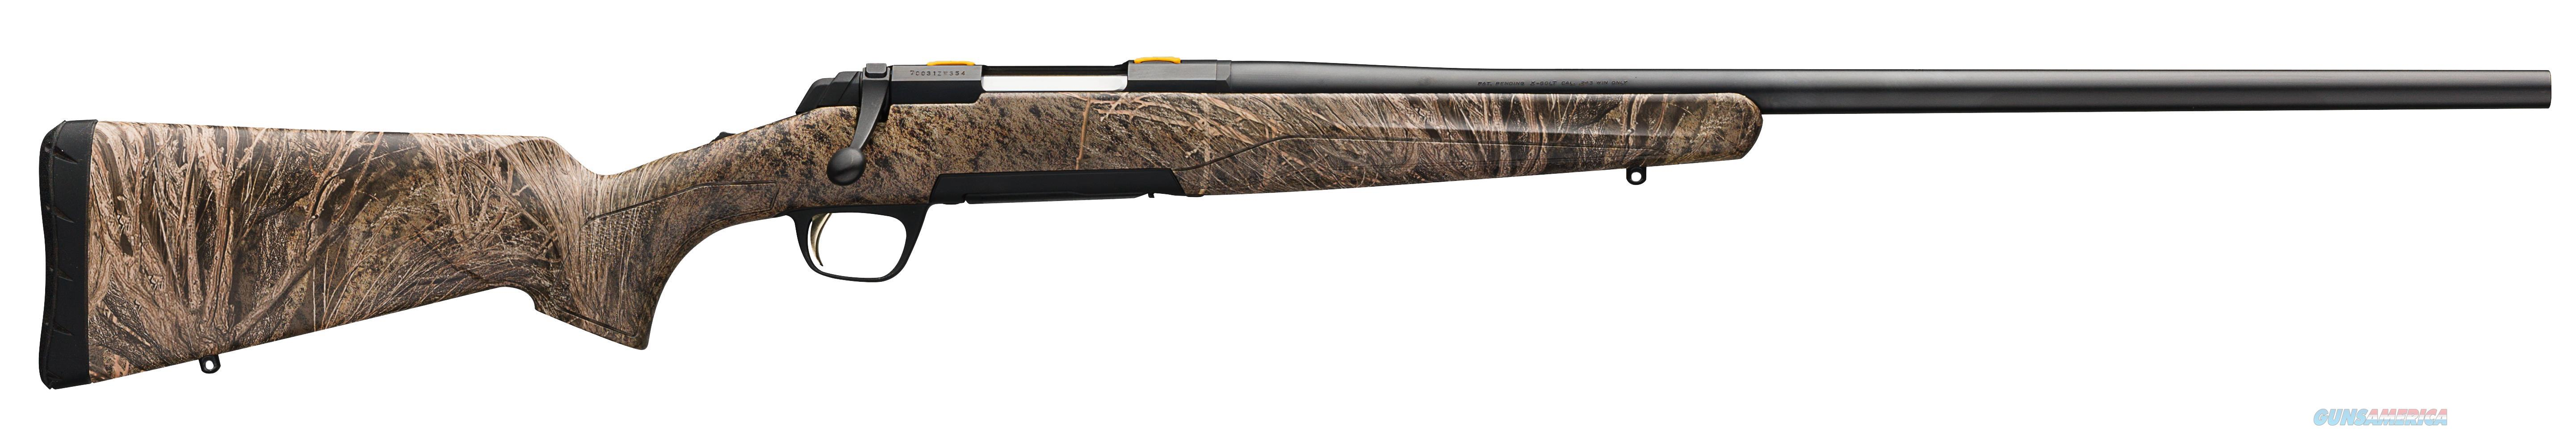 BROWNING XBOLT VARMINT STALKE 223REM MOBR NS DURA TOUC 035334208  Guns > Rifles > Browning Rifles > Bolt Action > Hunting > Blue